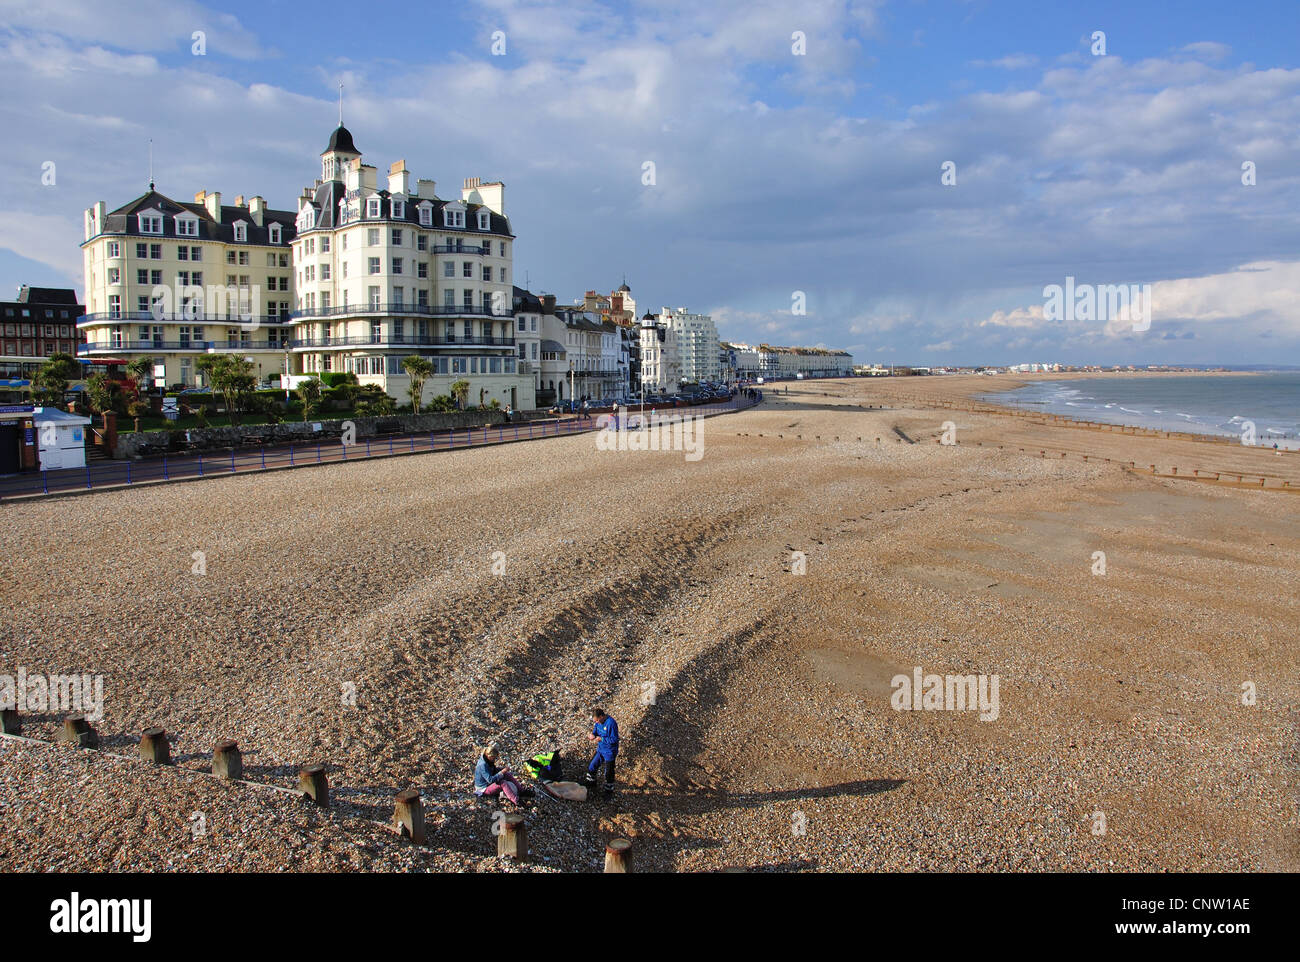 Beach and promenade view from Eastbourne Pier, Eastbourne, East Sussex, England, United Kingdom Stock Photo